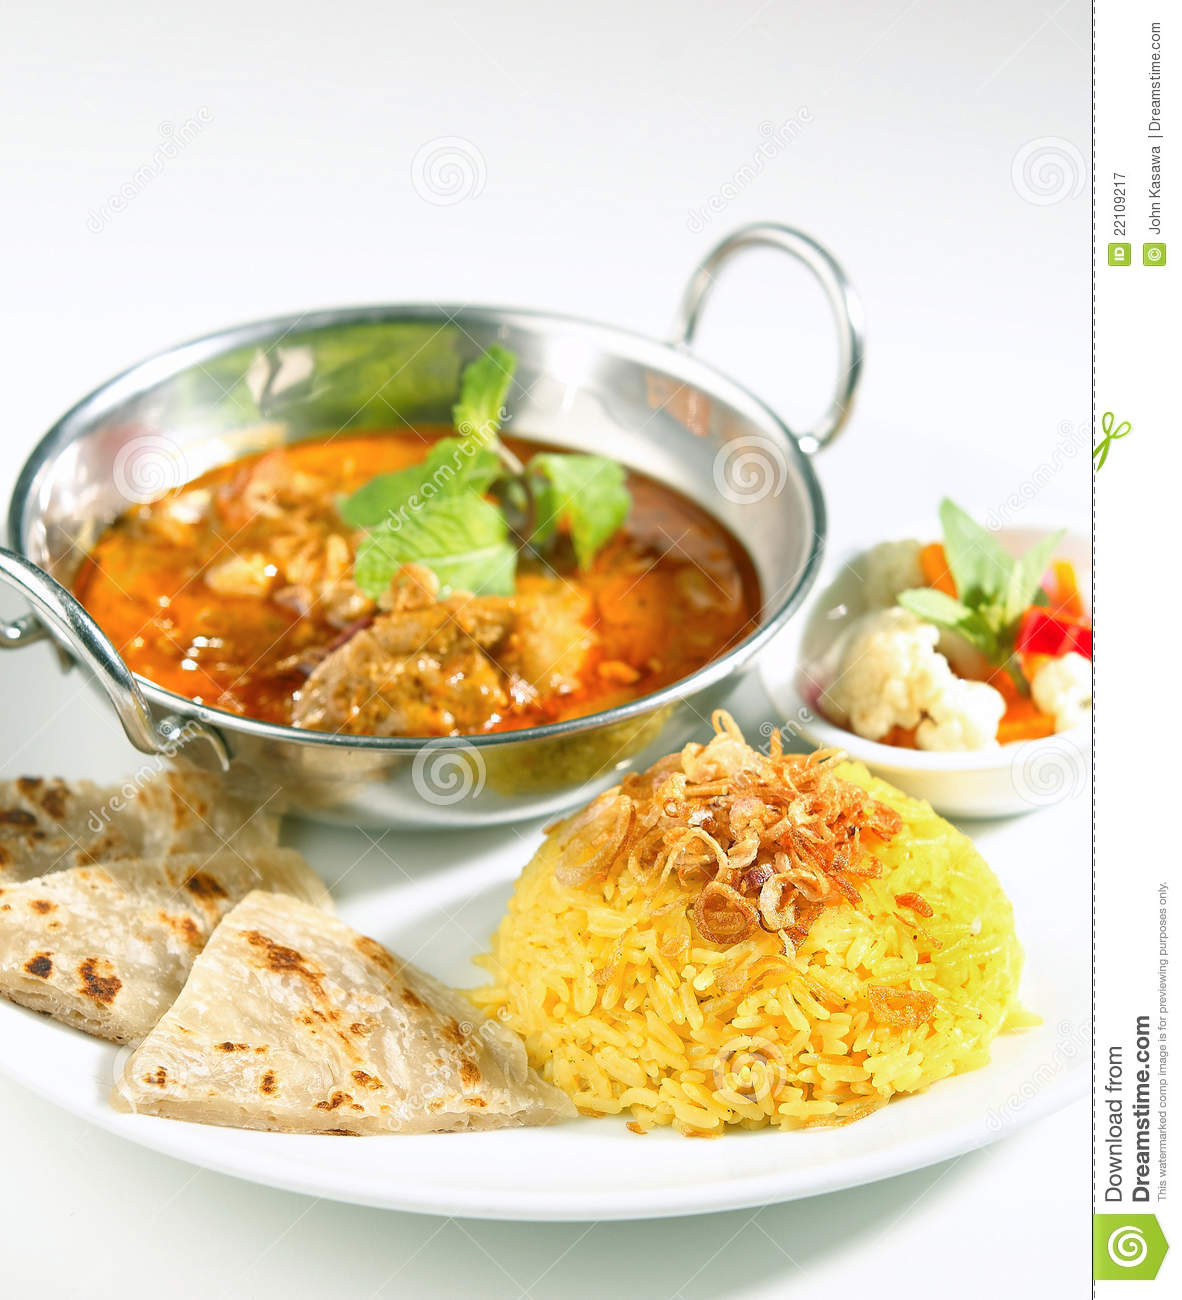 Indian Food Royalty Free Stock Photography - Image: 22109217: www.dreamstime.com/royalty-free-stock-photography-indian-food...